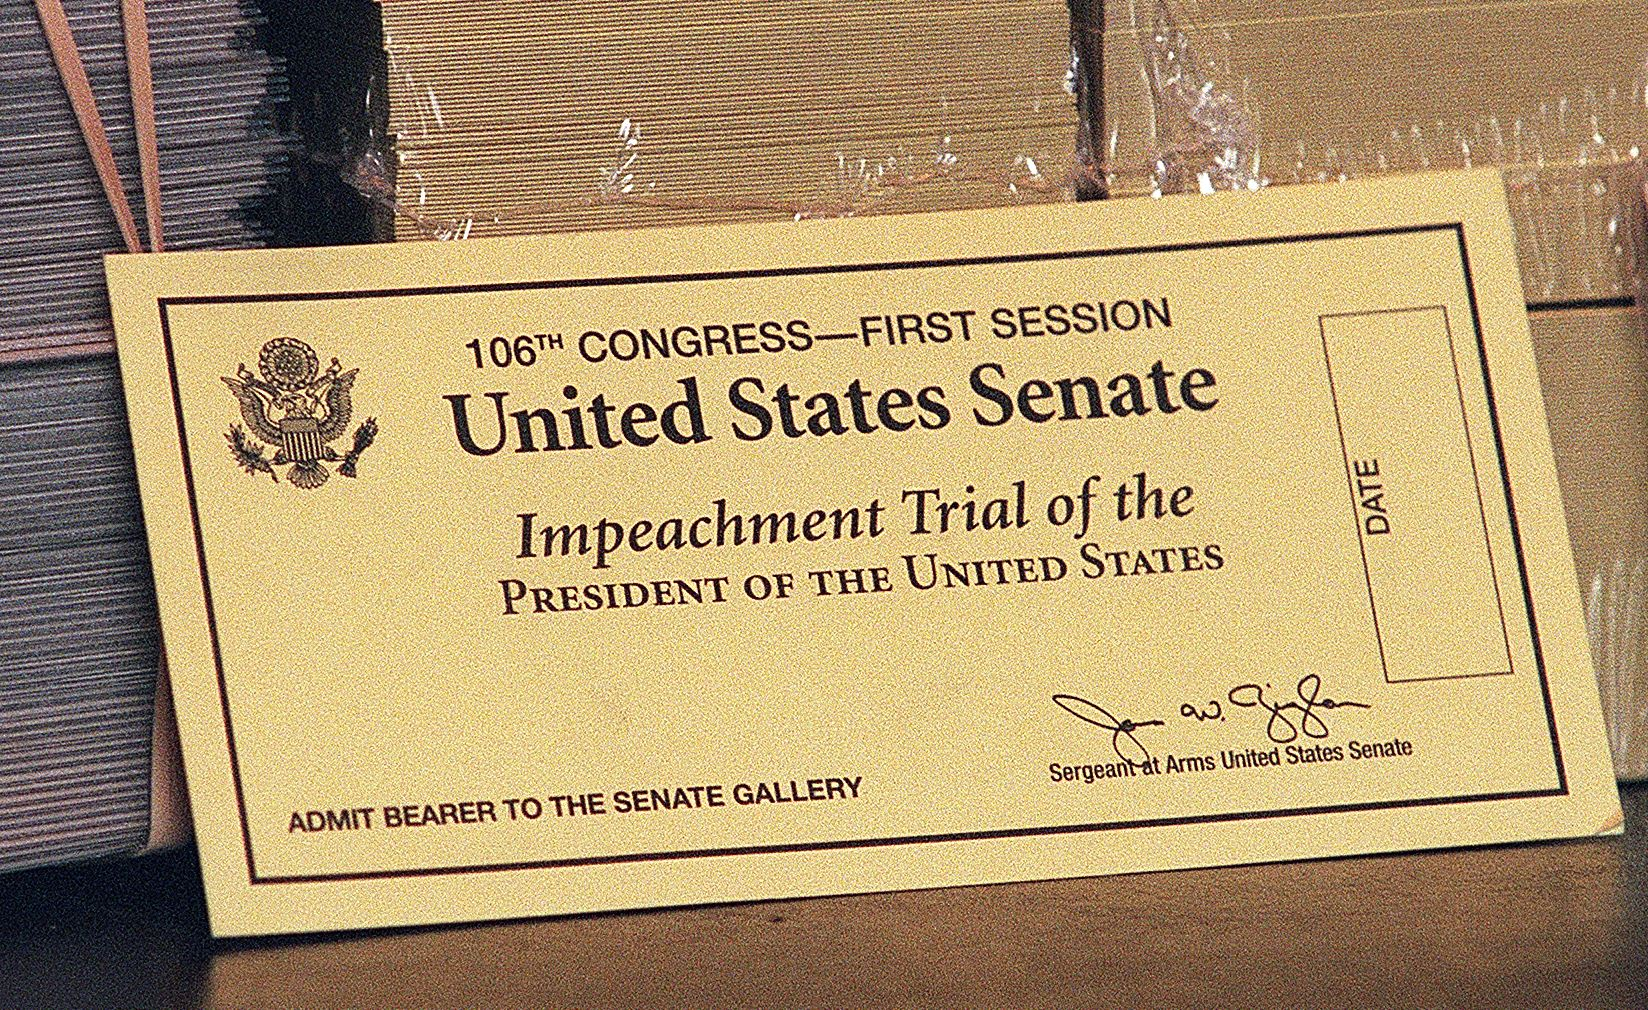 An official ticket to watch the impeachment trial of US President Bill Clinton in 1999.